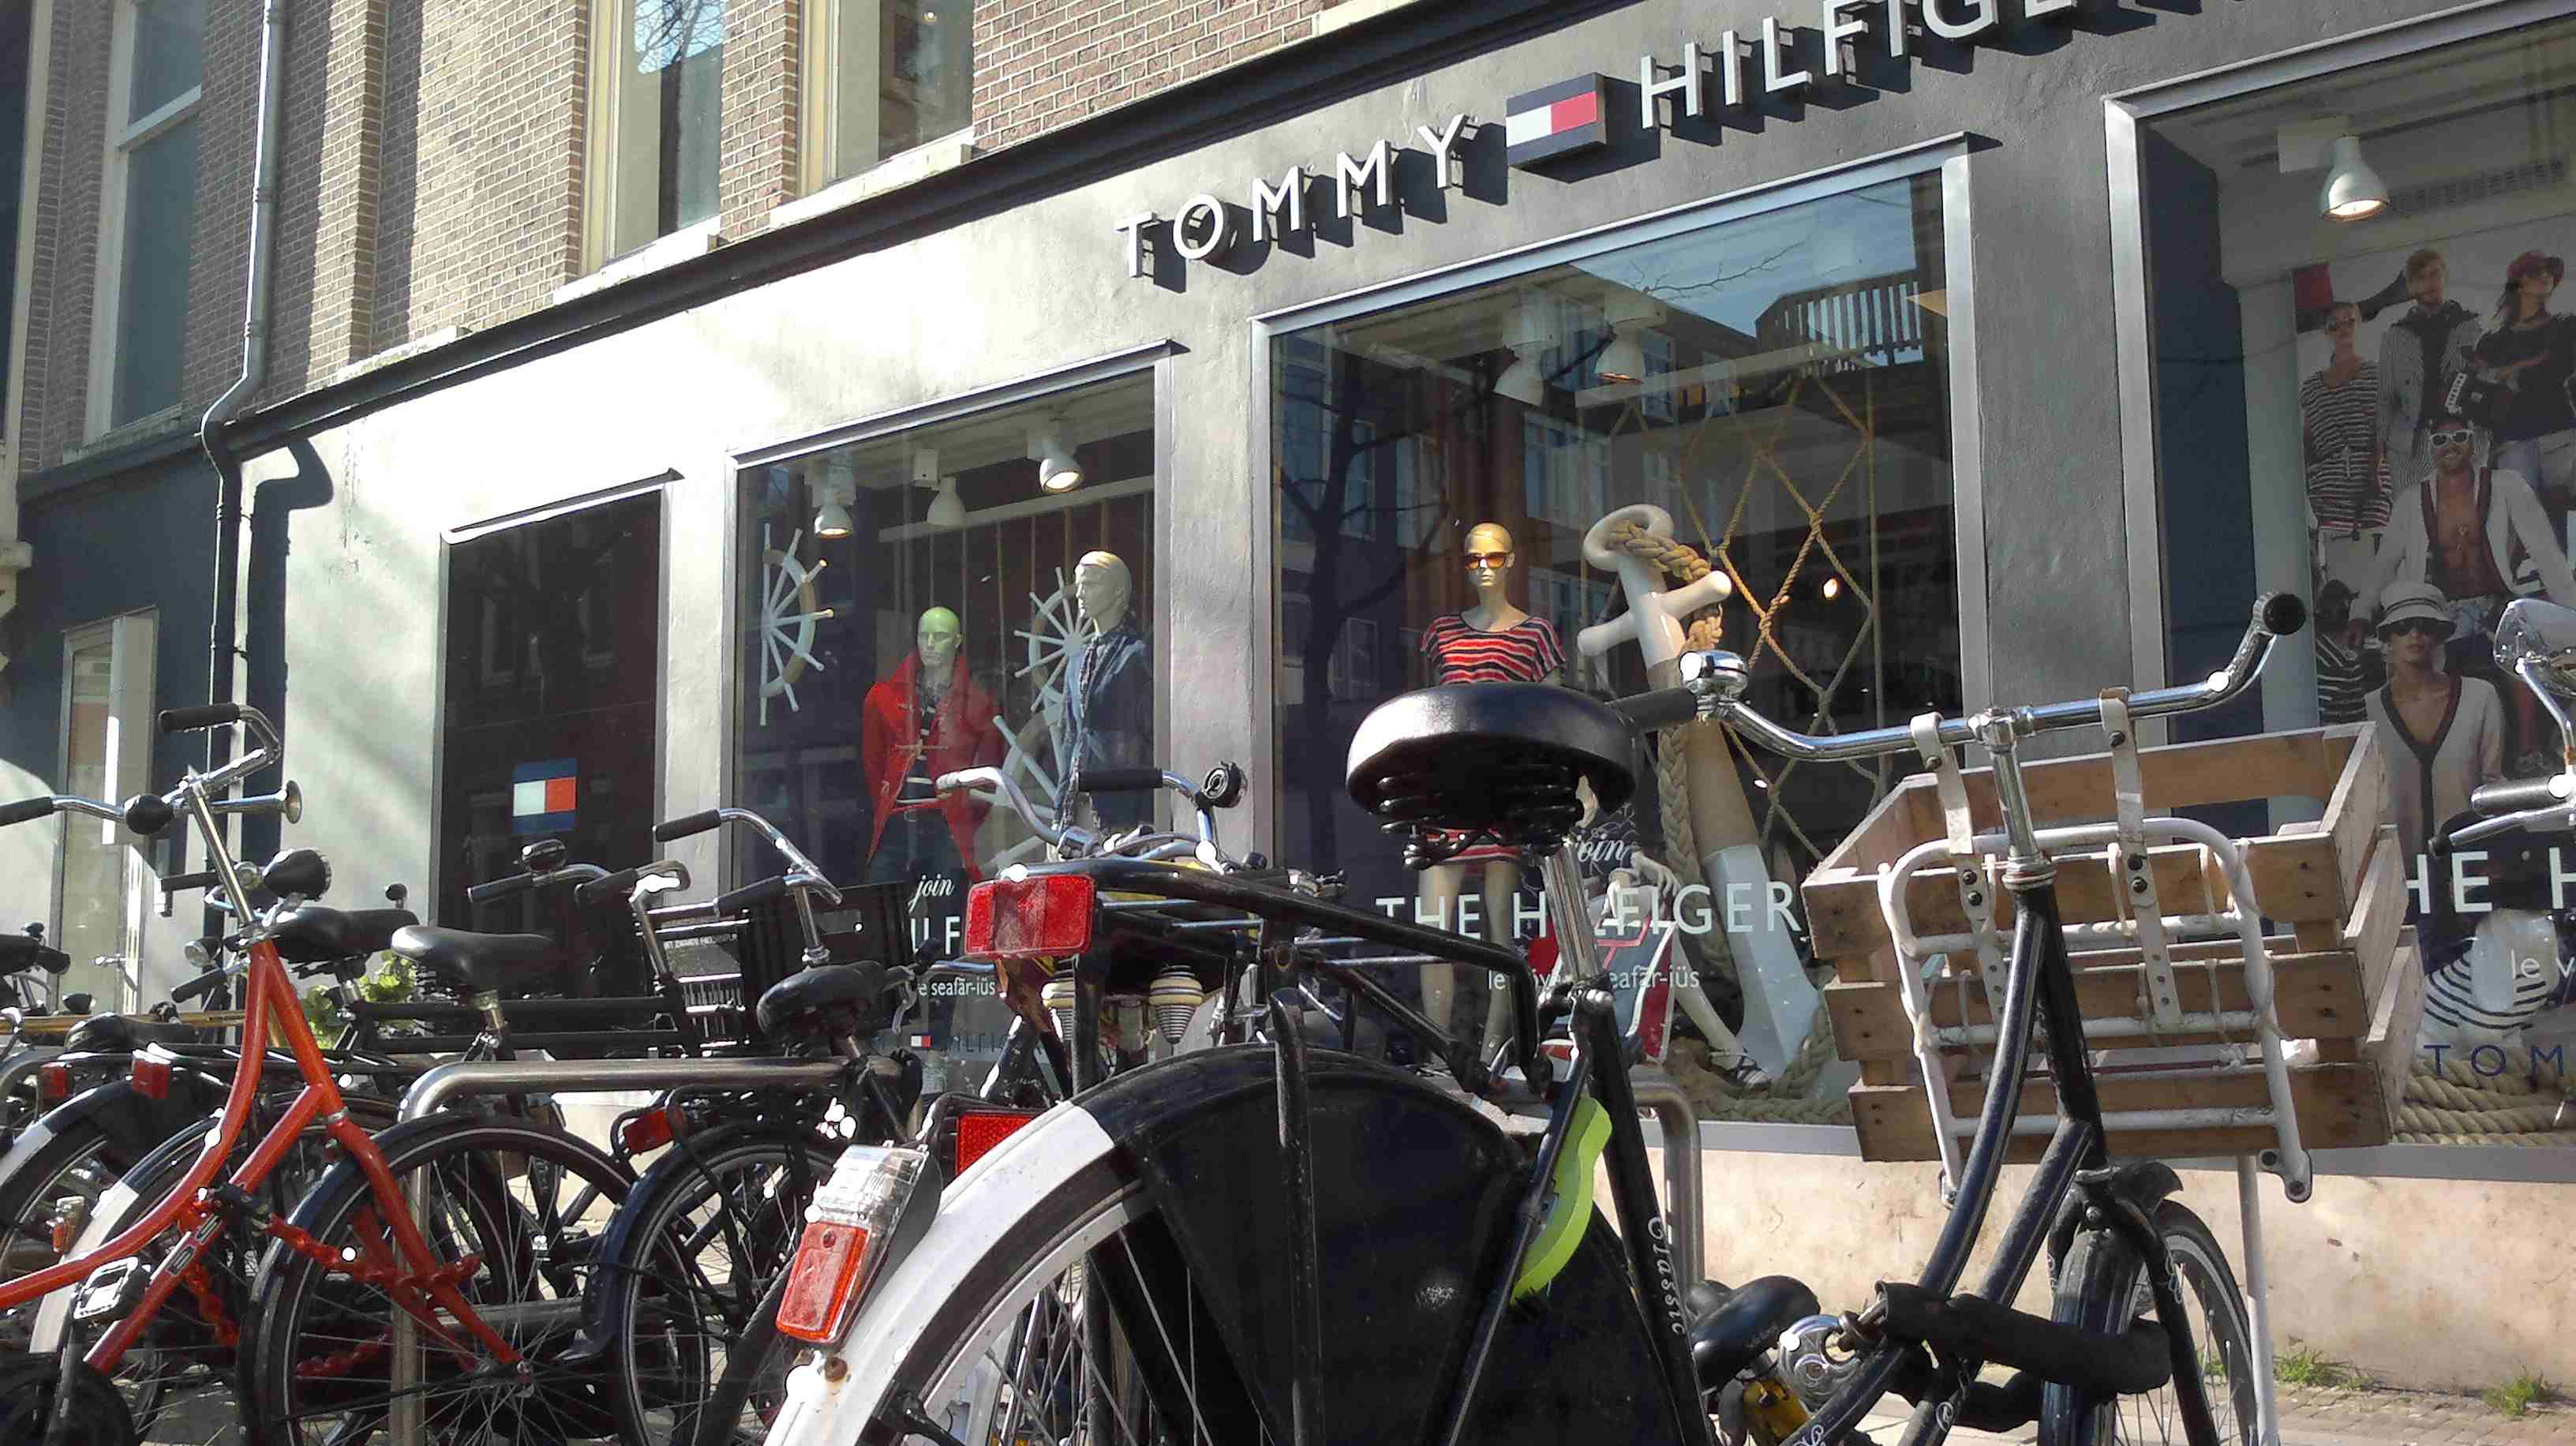 omabikes and Tommy Hilfiger